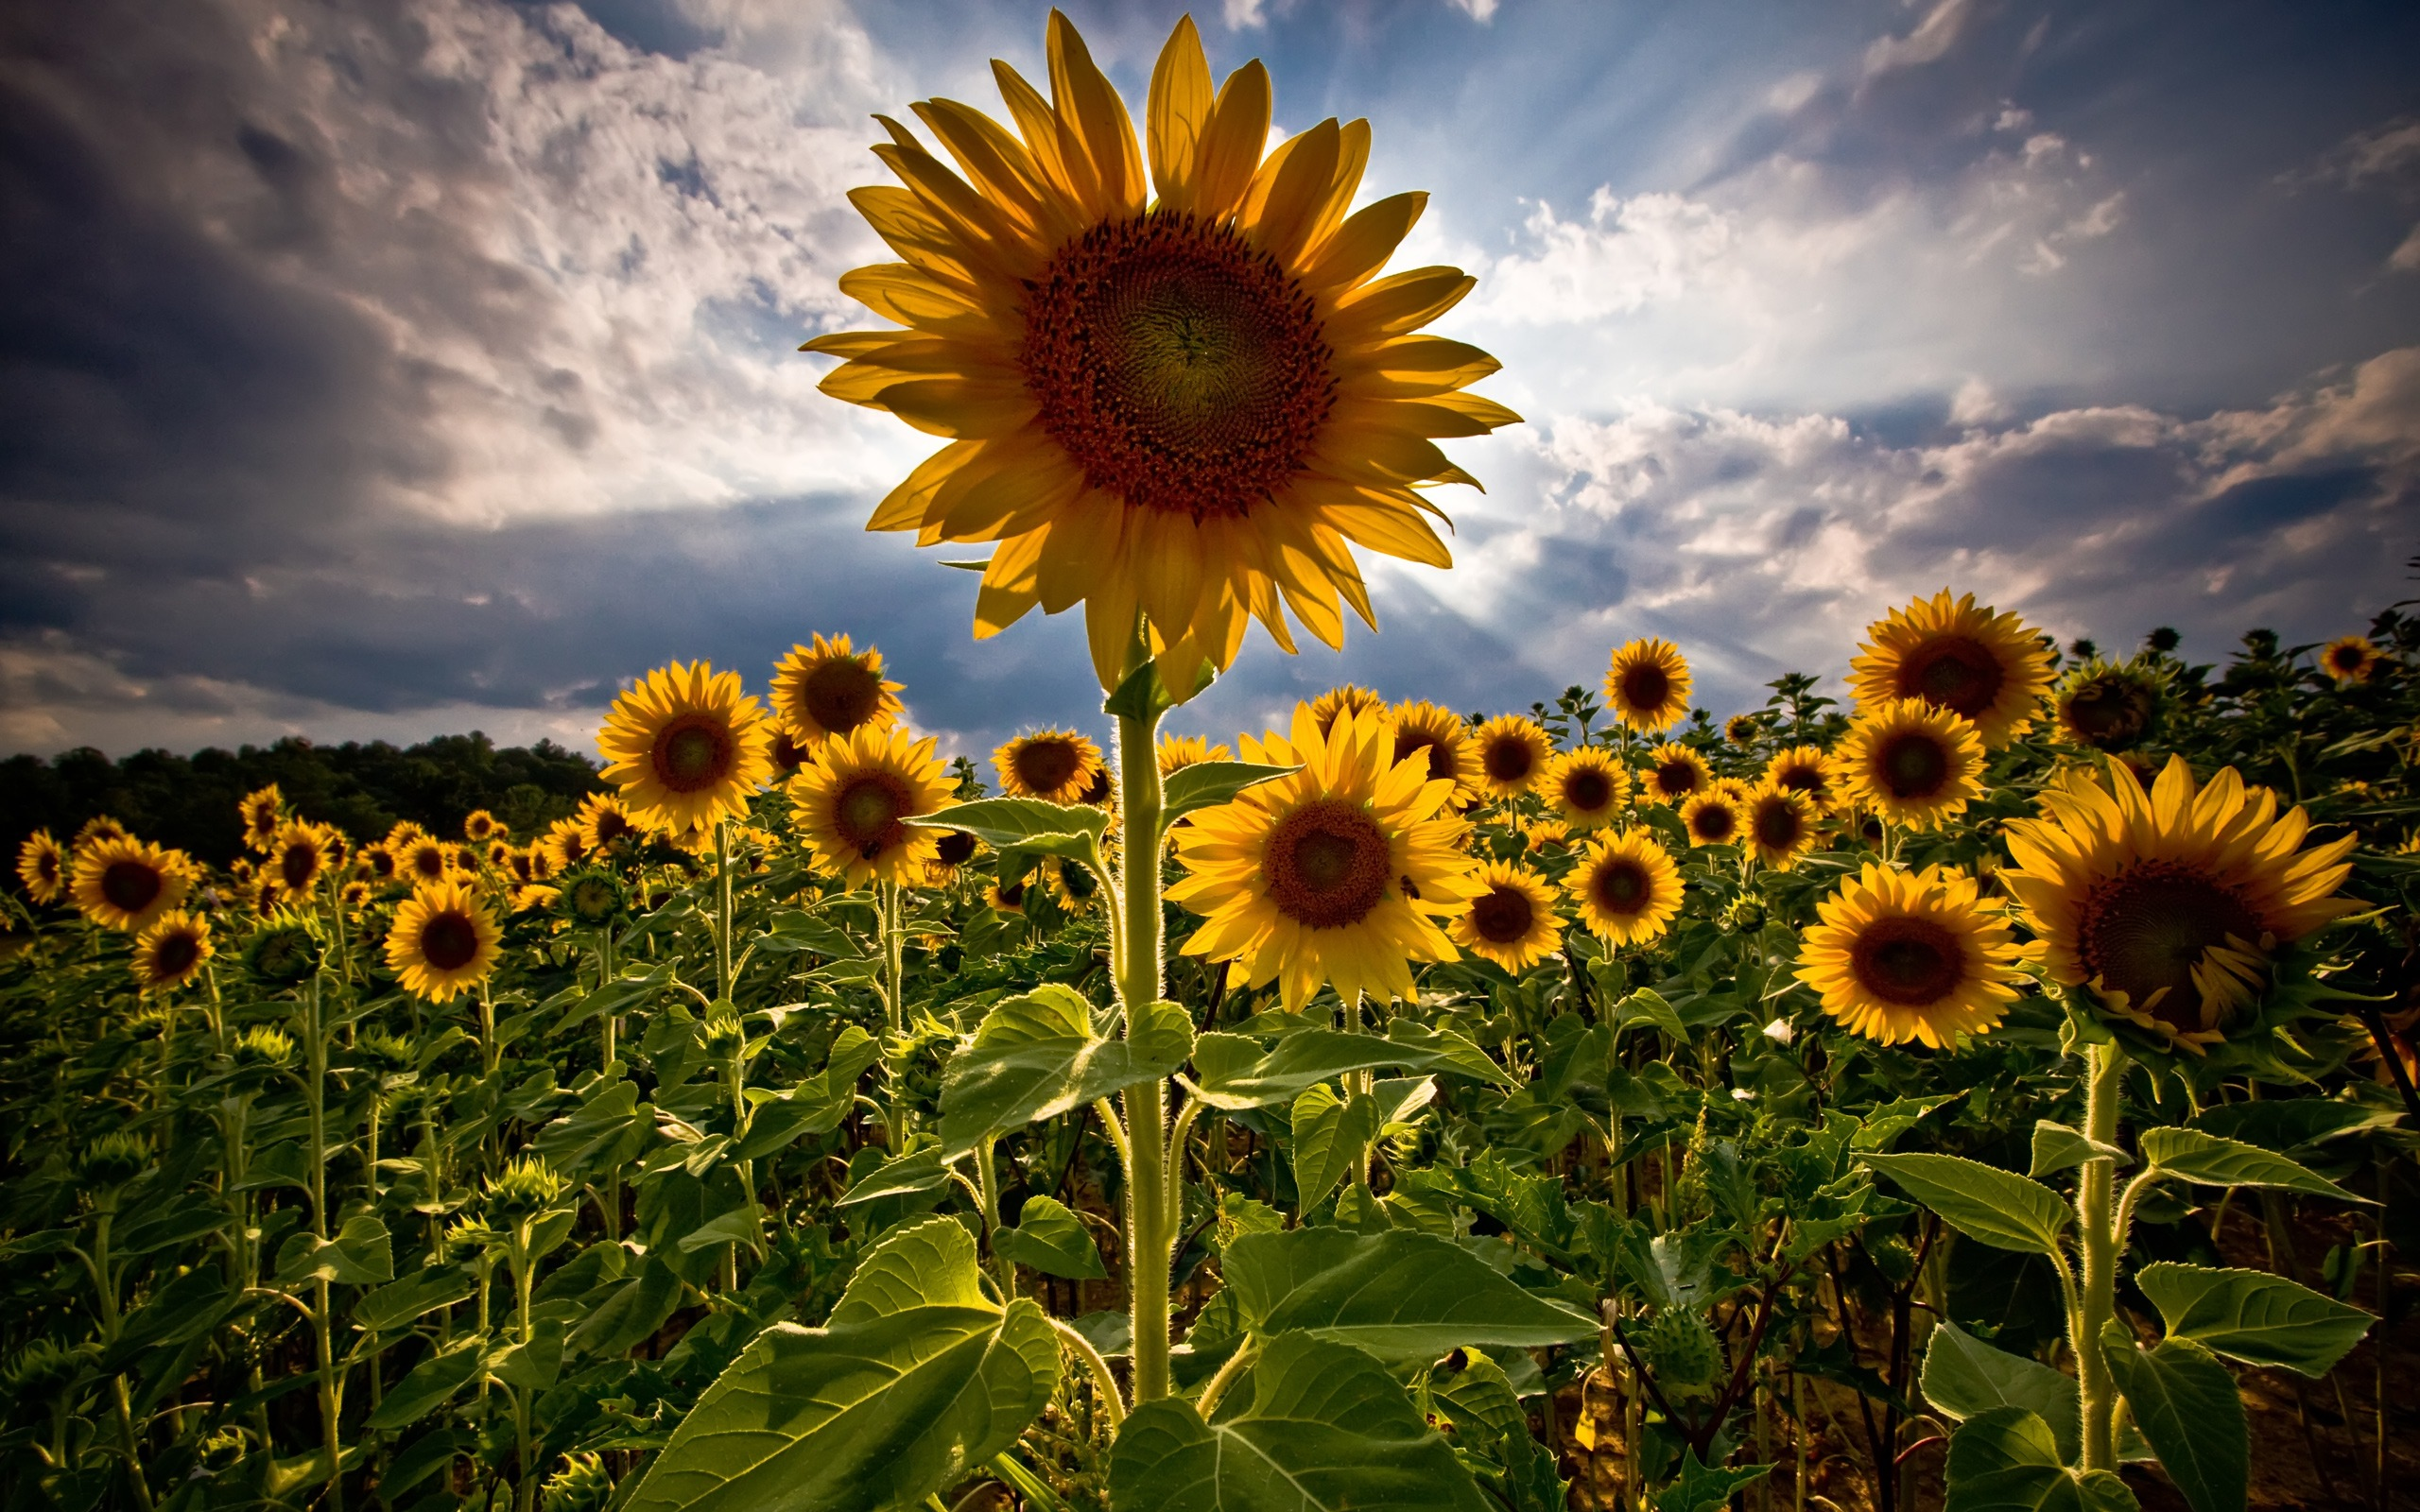 sunflowers wallpaper flowers nature wallpapers in jpg format for